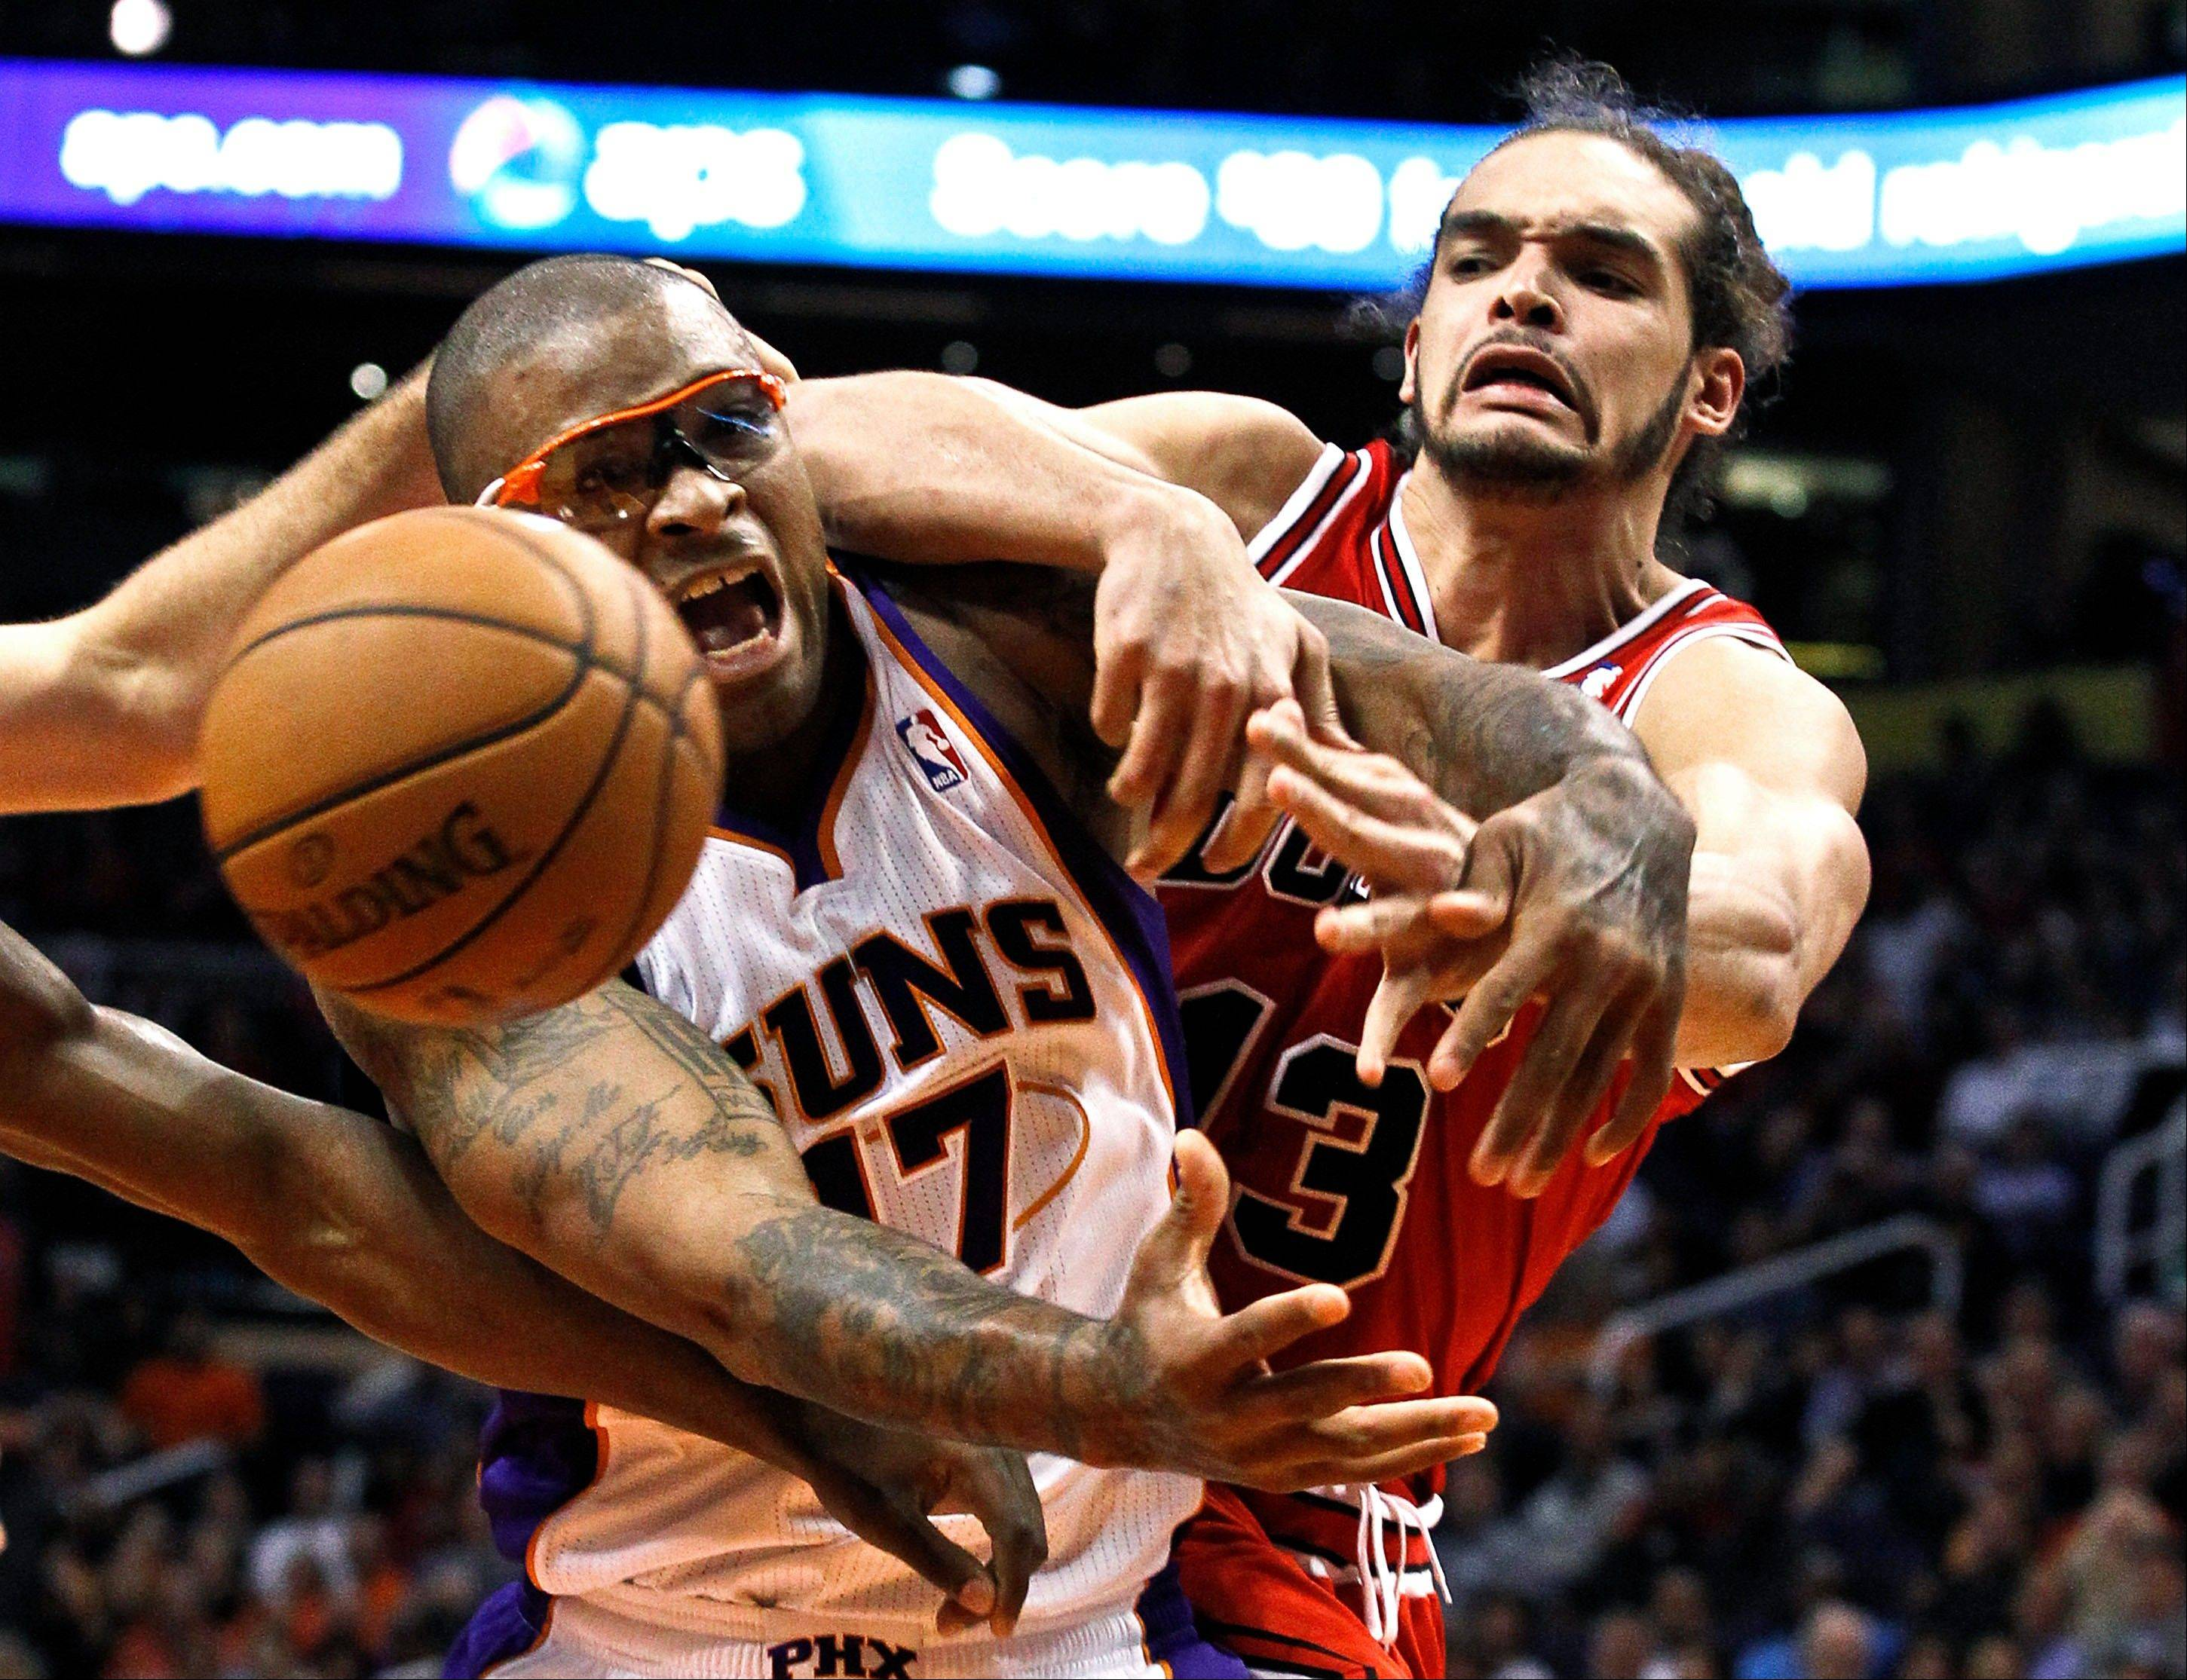 The Phoenix Suns' P.J. Tucker battles Bulls center Joakim Noah for a loose ball Wednesday during the second half in Phoenix. The Bulls won 112-106.